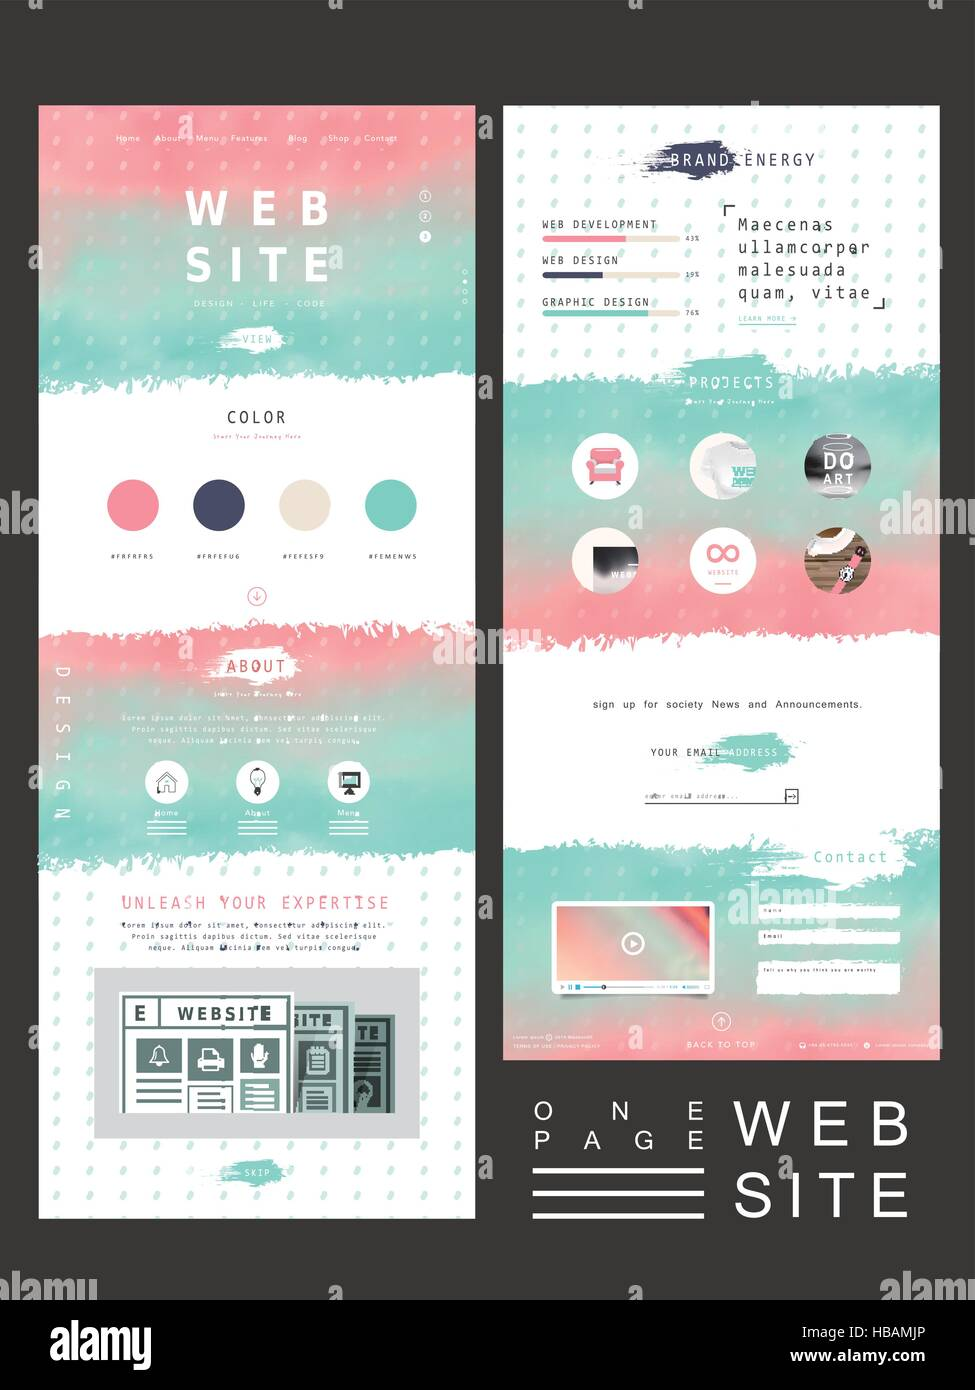 17/02/2021· 25 photography website templates for professional and hobby photographers 2021. Creative One Page Website Template Design With Smooth Colorful Background Stock Vector Image Art Alamy